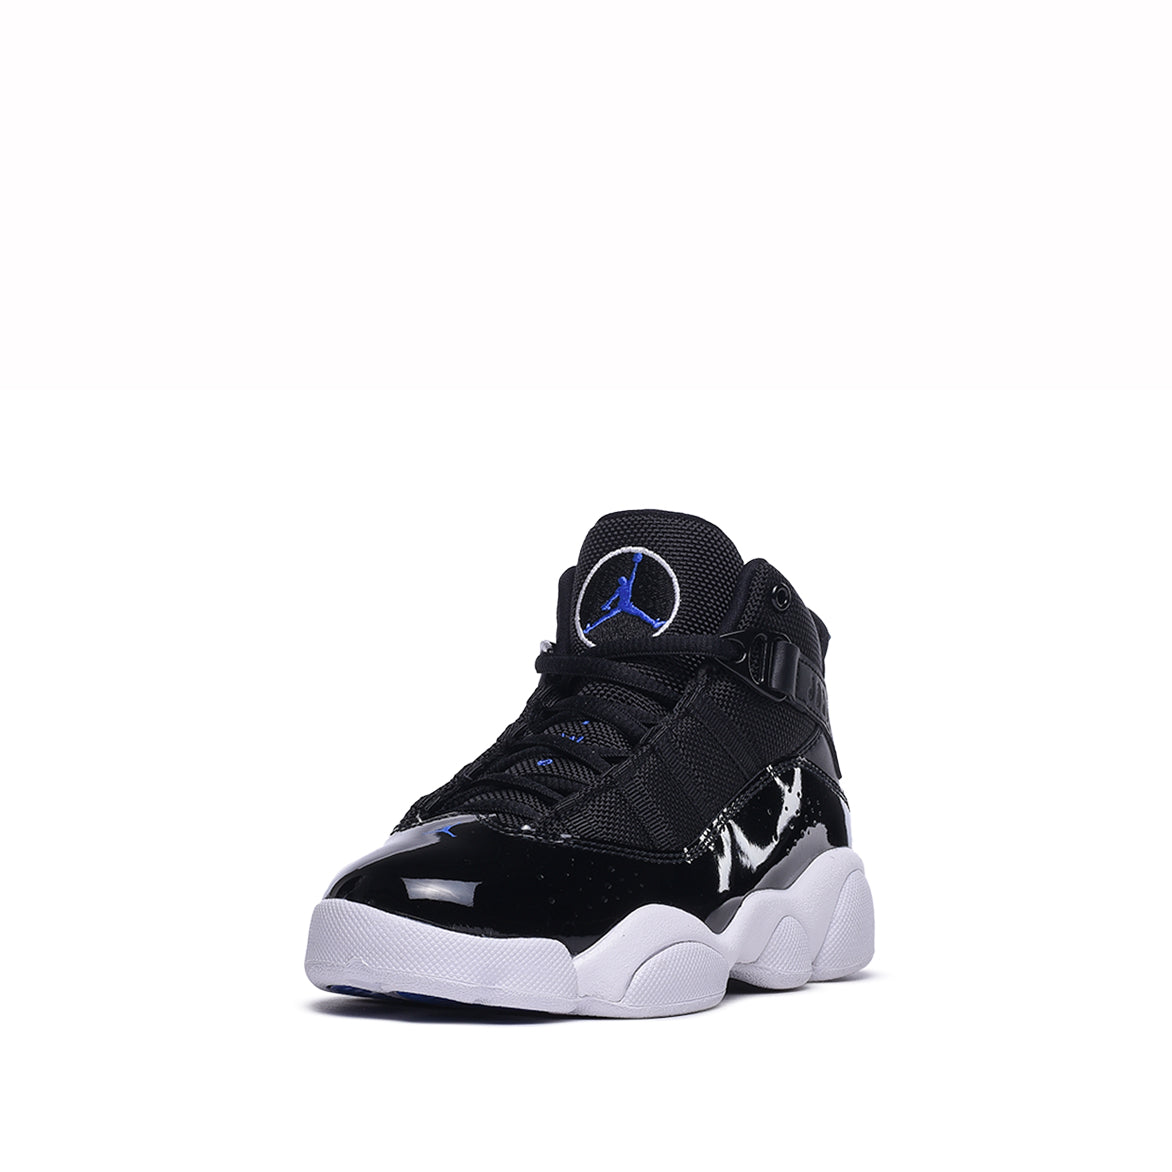 JORDAN 6 RINGS (PS) - BLACK / HYPER ROYAL / WHITE